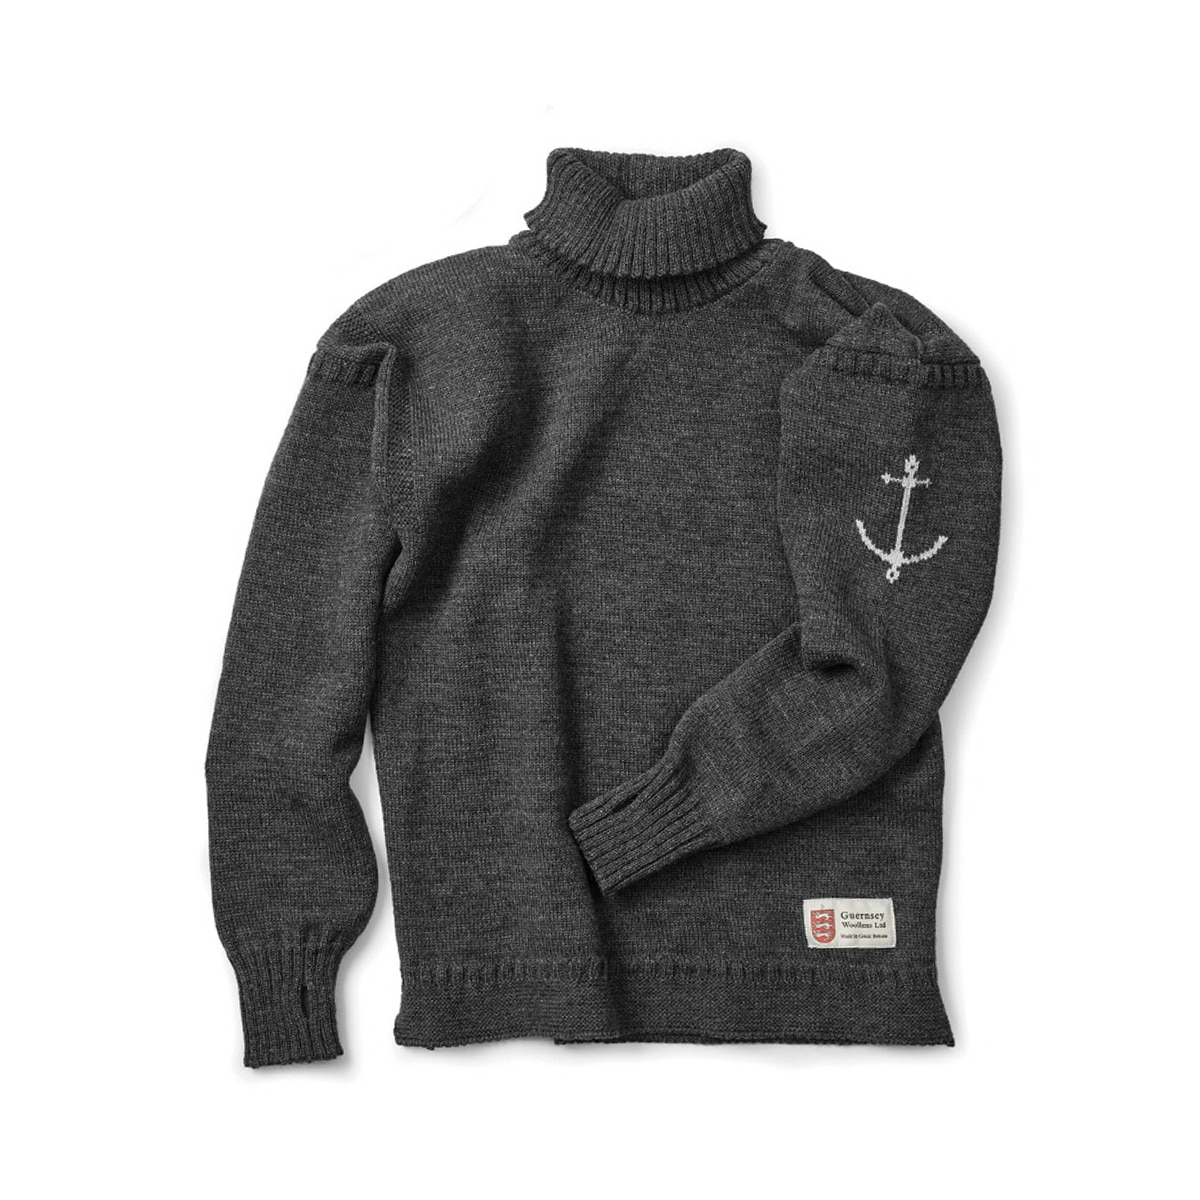 [GUERNSEY WOOLLENS] GUERNSEY FISHERMAN TURTLENECK SWEAT 'CHARCOAL'